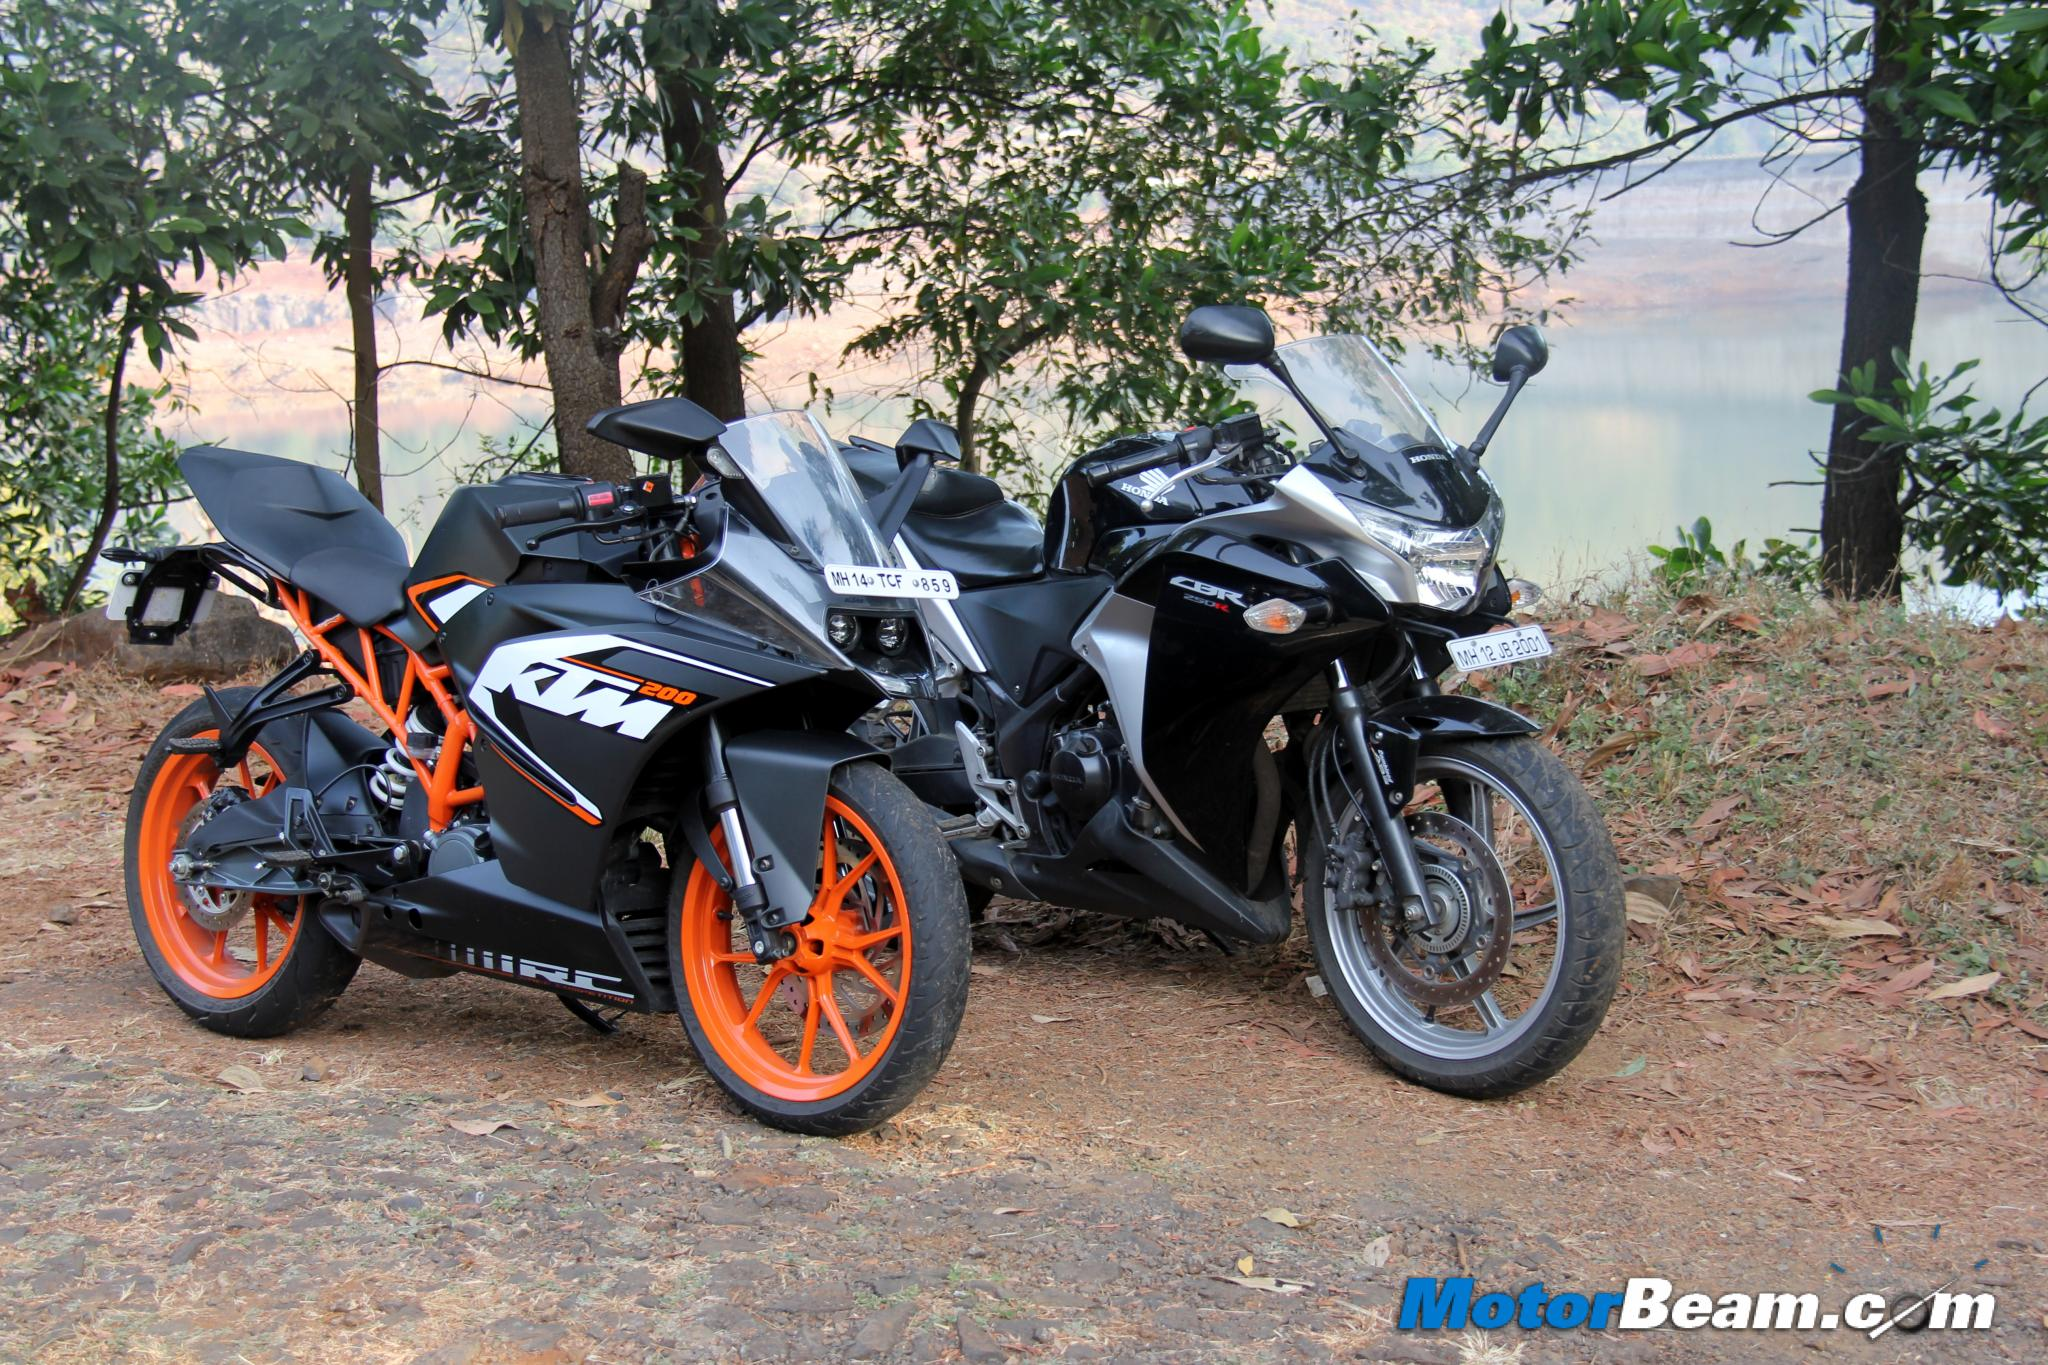 Bajaj pulsar rs200 vs ktm rc200 vs honda cbr250r comparison youtube - Ktm Rc 200 Vs Honda Cbr250r Comparison